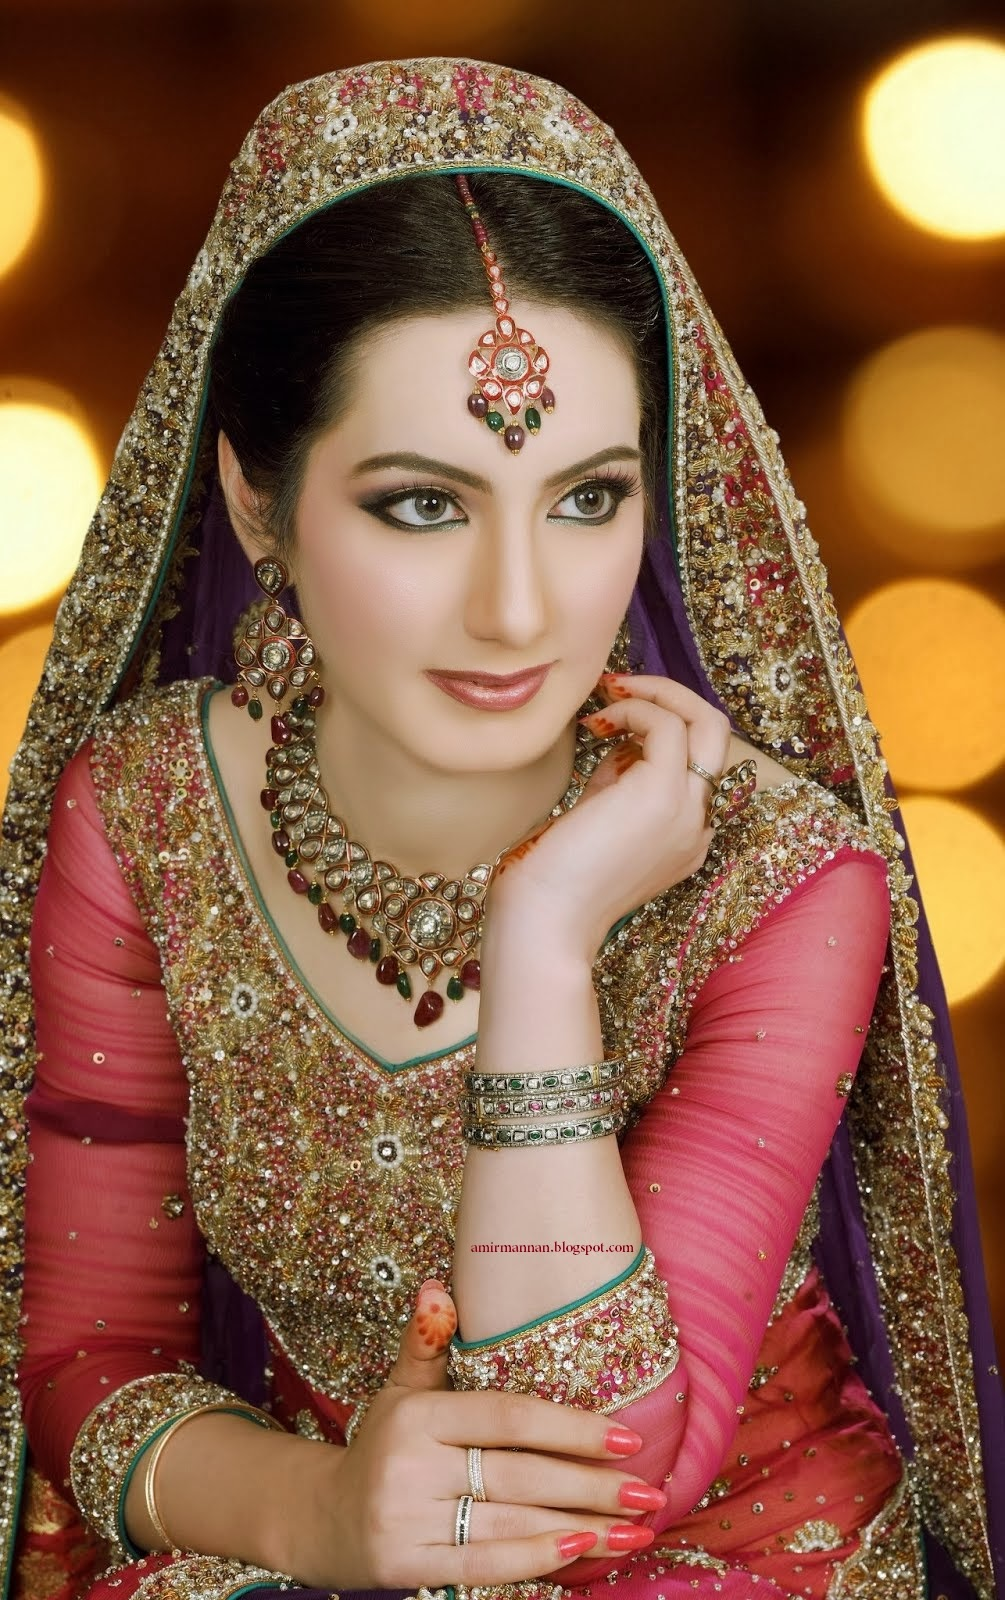 Pakistan Diamond Jewellers: Pakistani Bridal And Fashion ...